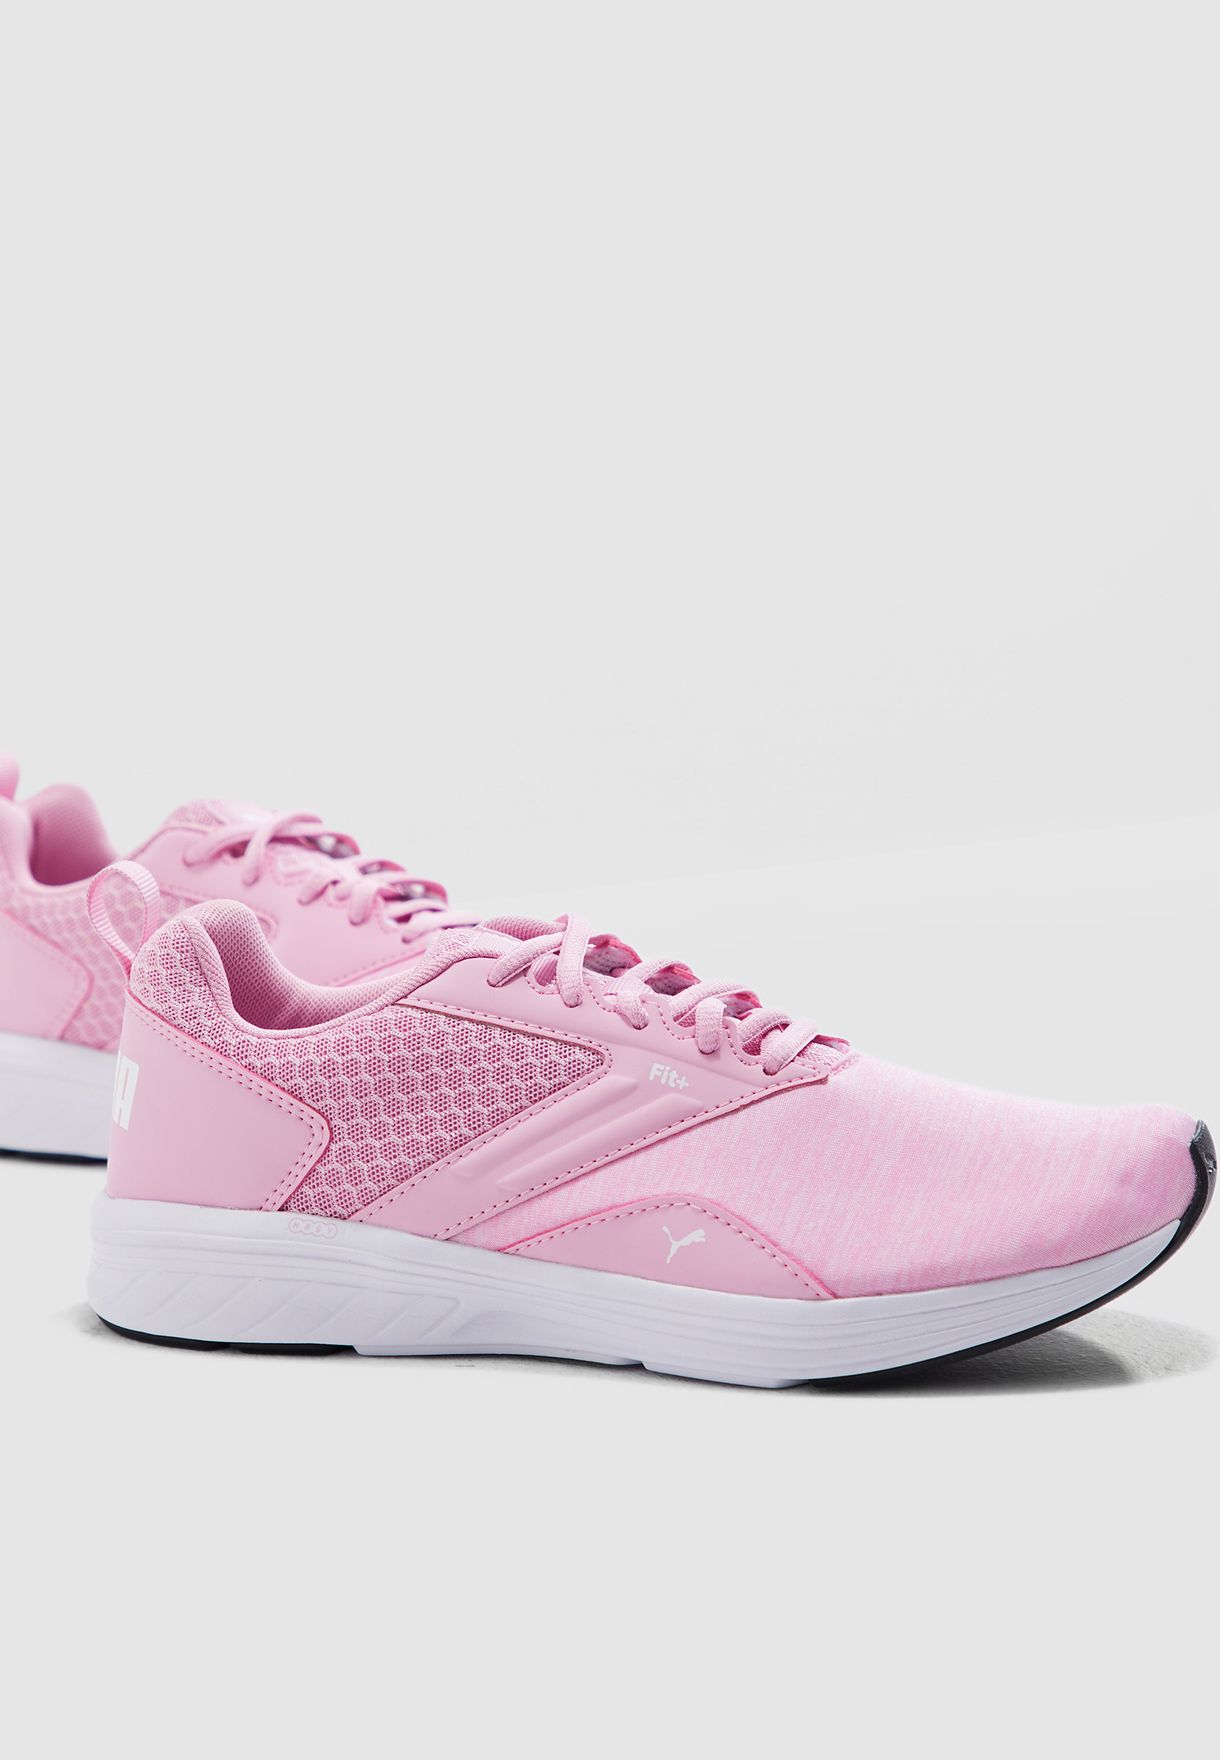 03cf8090a726 Shop PUMA pink Youth NRGY Comet 19067509 for Kids in Saudi ...